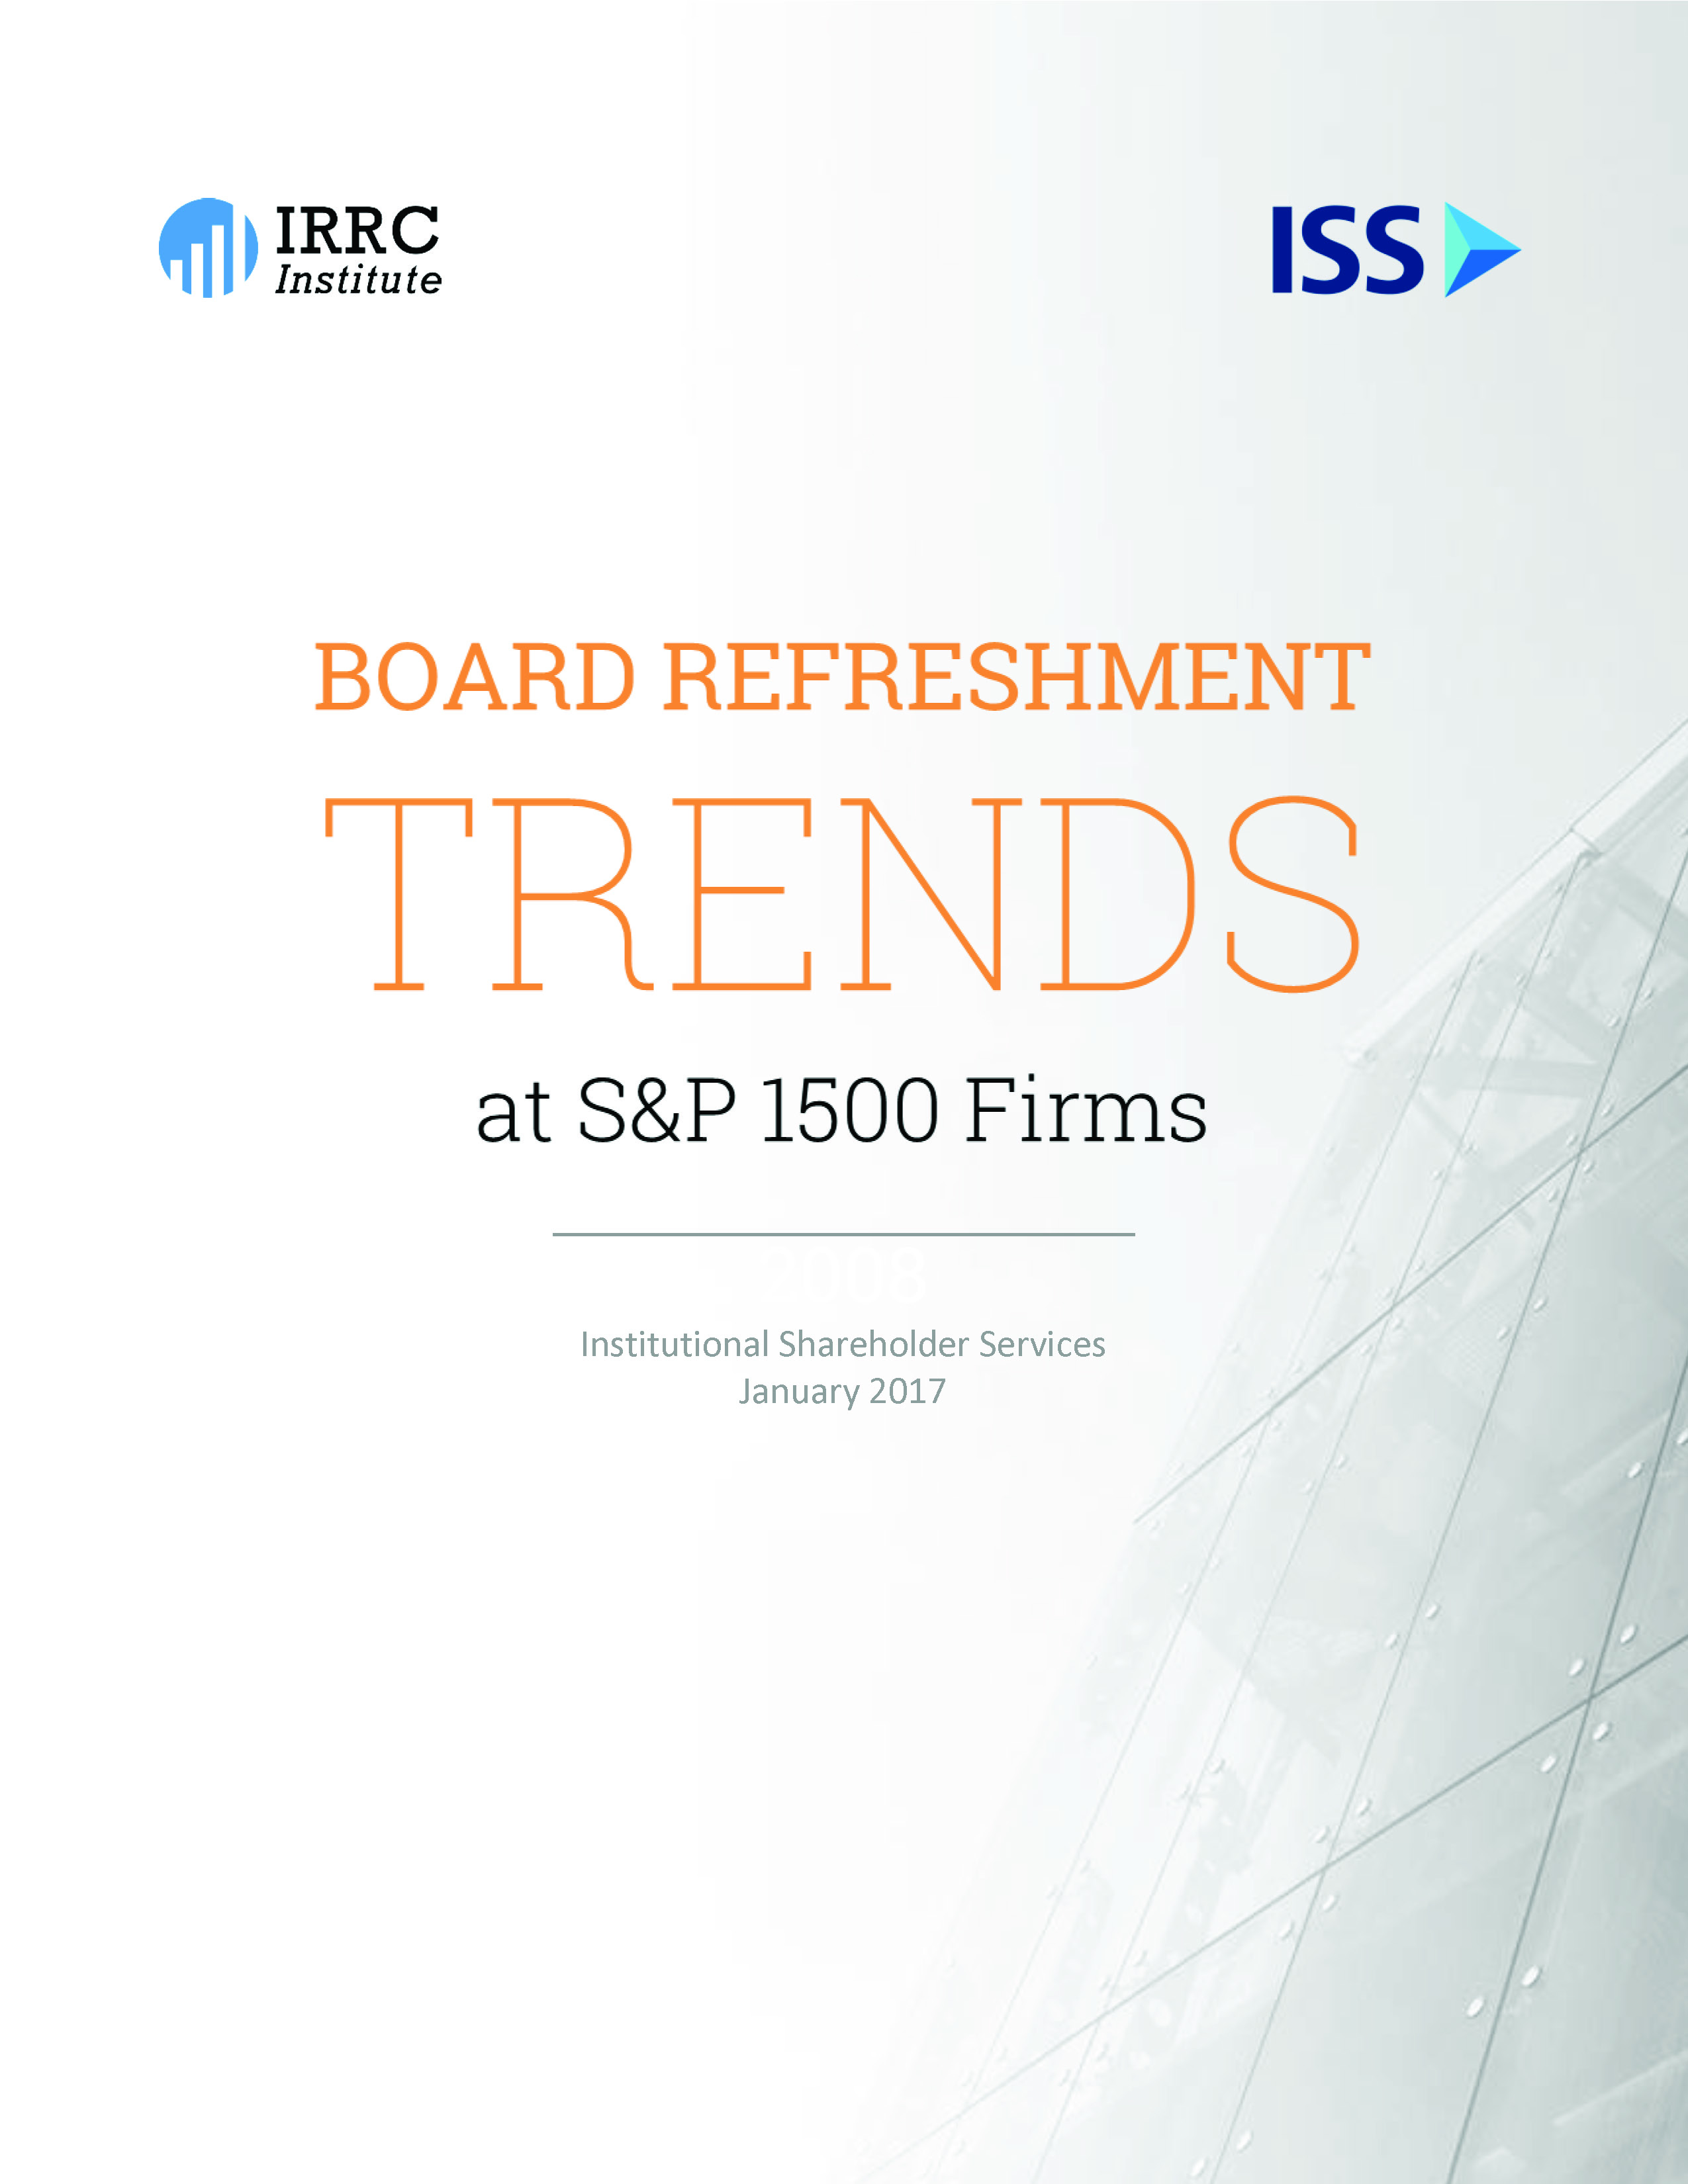 irrci-board-refreshment-trends_page_001